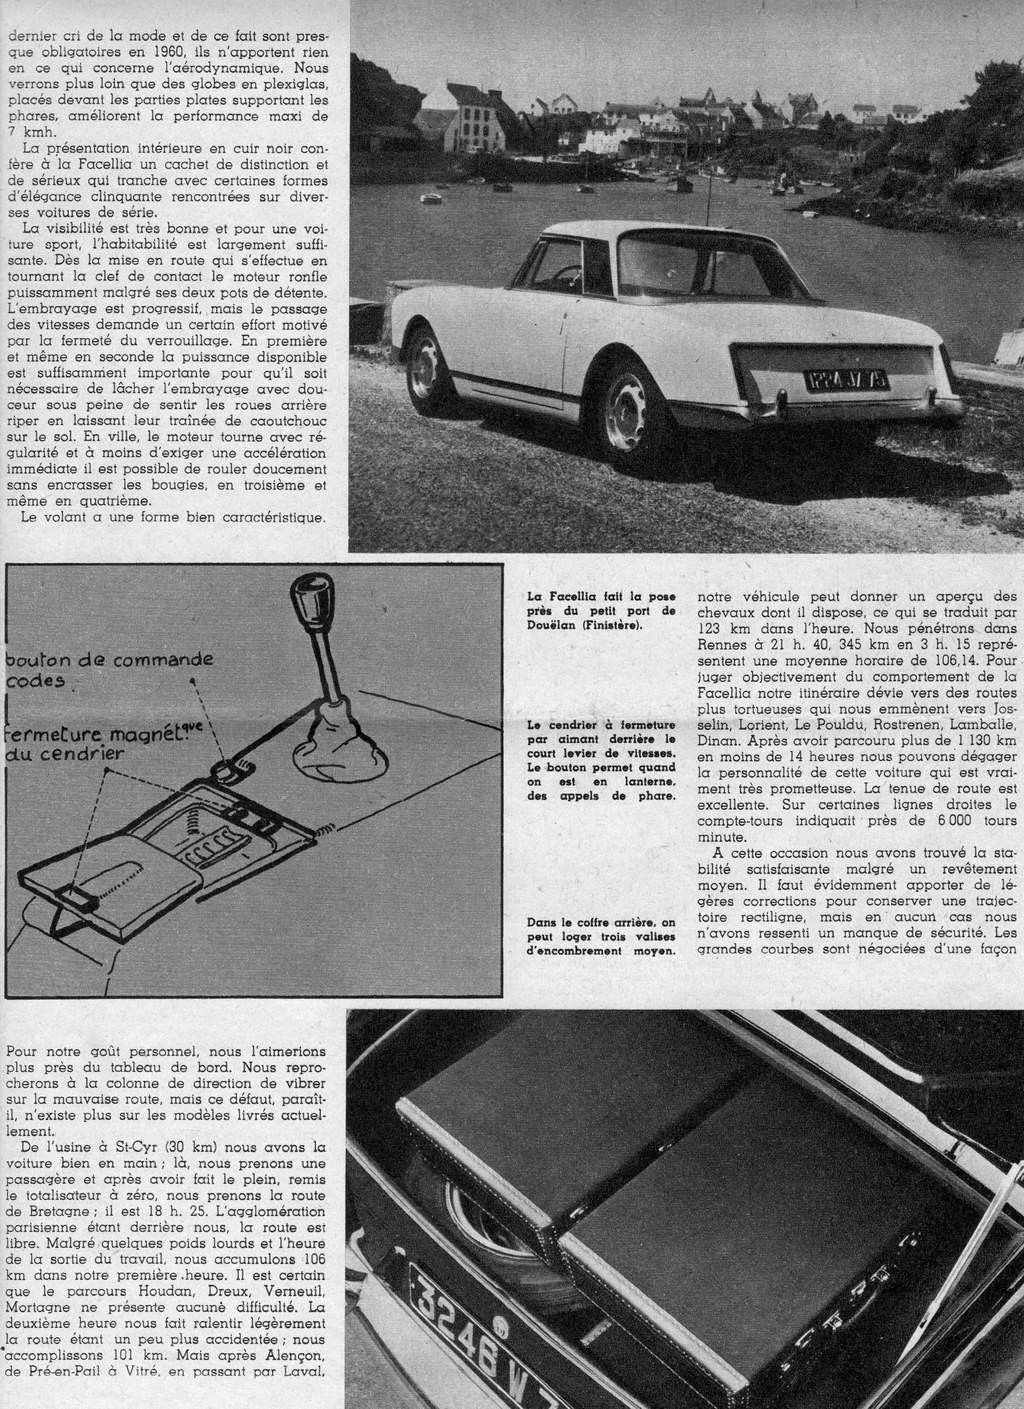 Test Facellia Fa Automobile 1960 p5-7 Epson NGxga